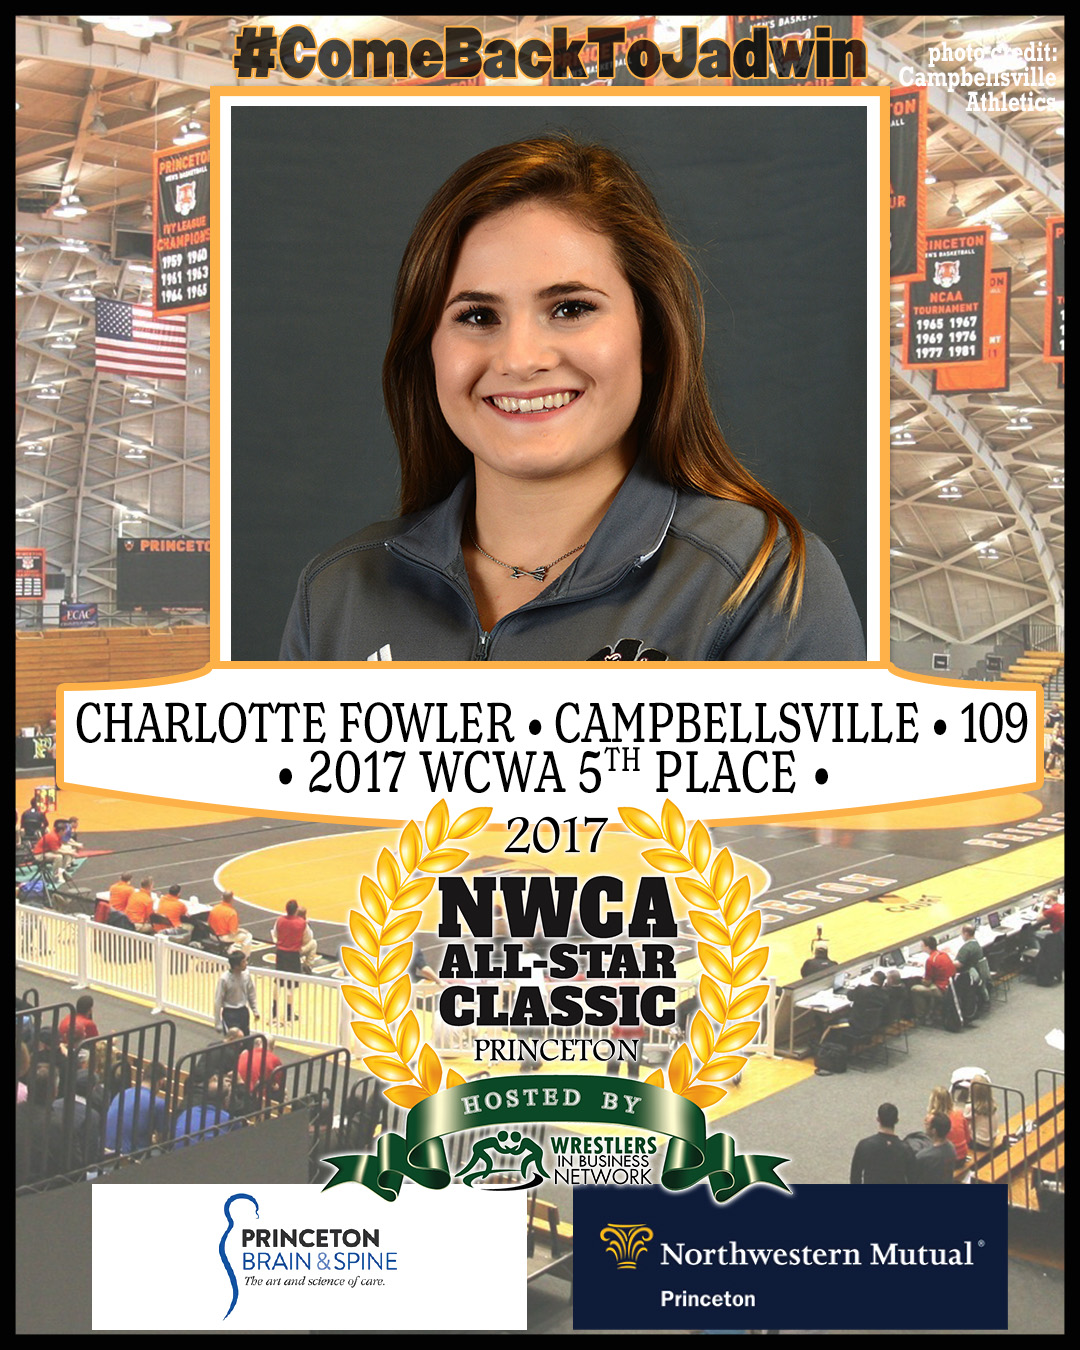 2017 All Star Classic Social Media Graphic_CHARLOTTE_FOWLER.jpg